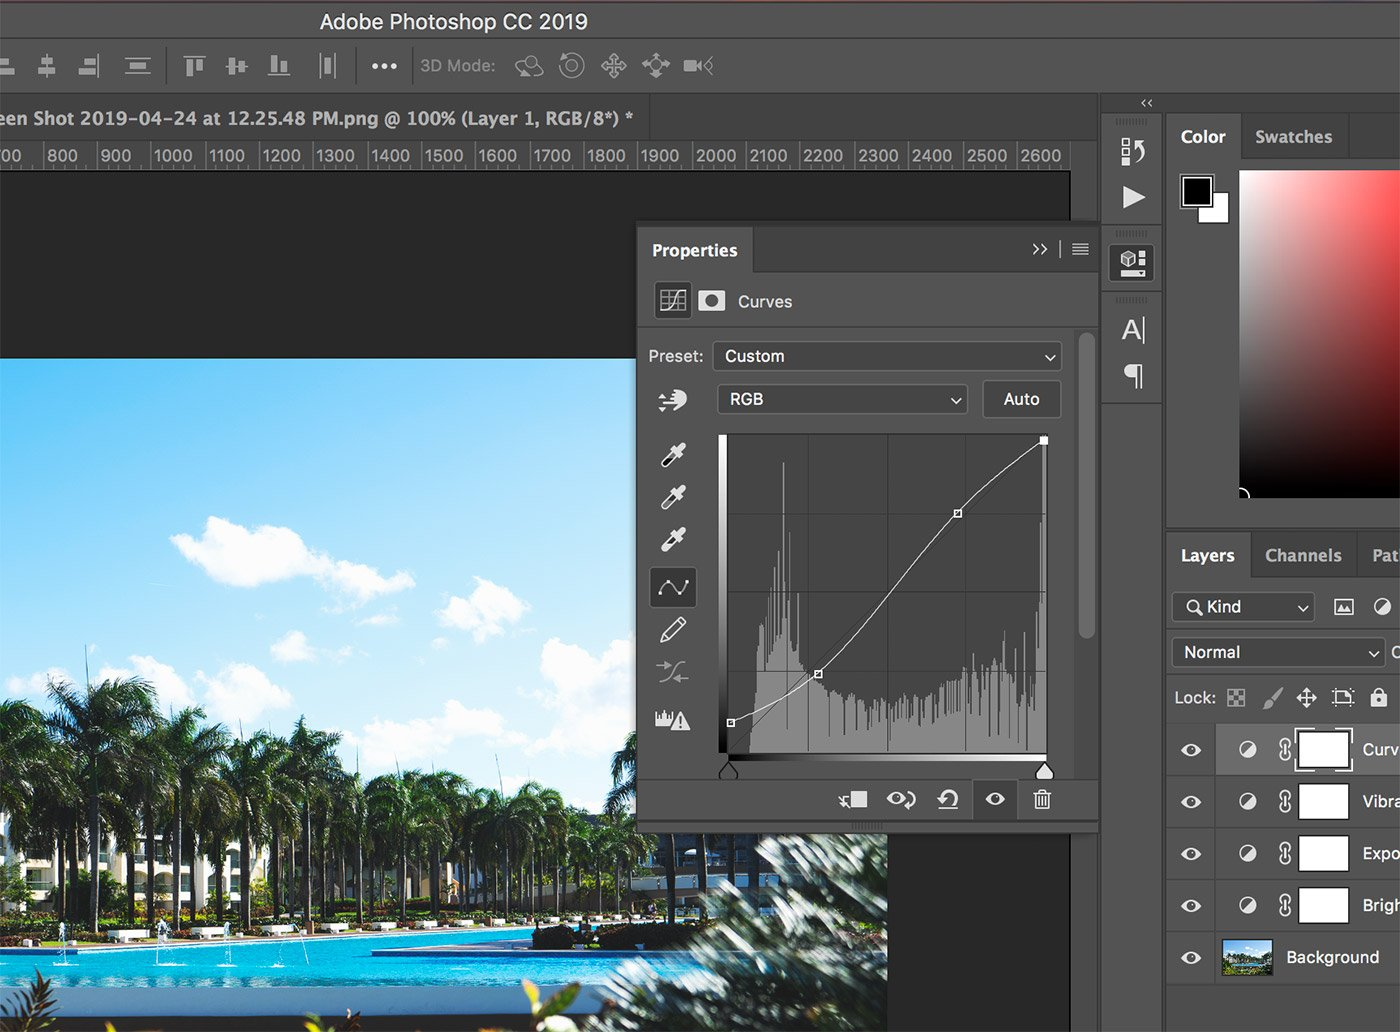 How to Create a Photoshop Matte Effect - FilterGrade